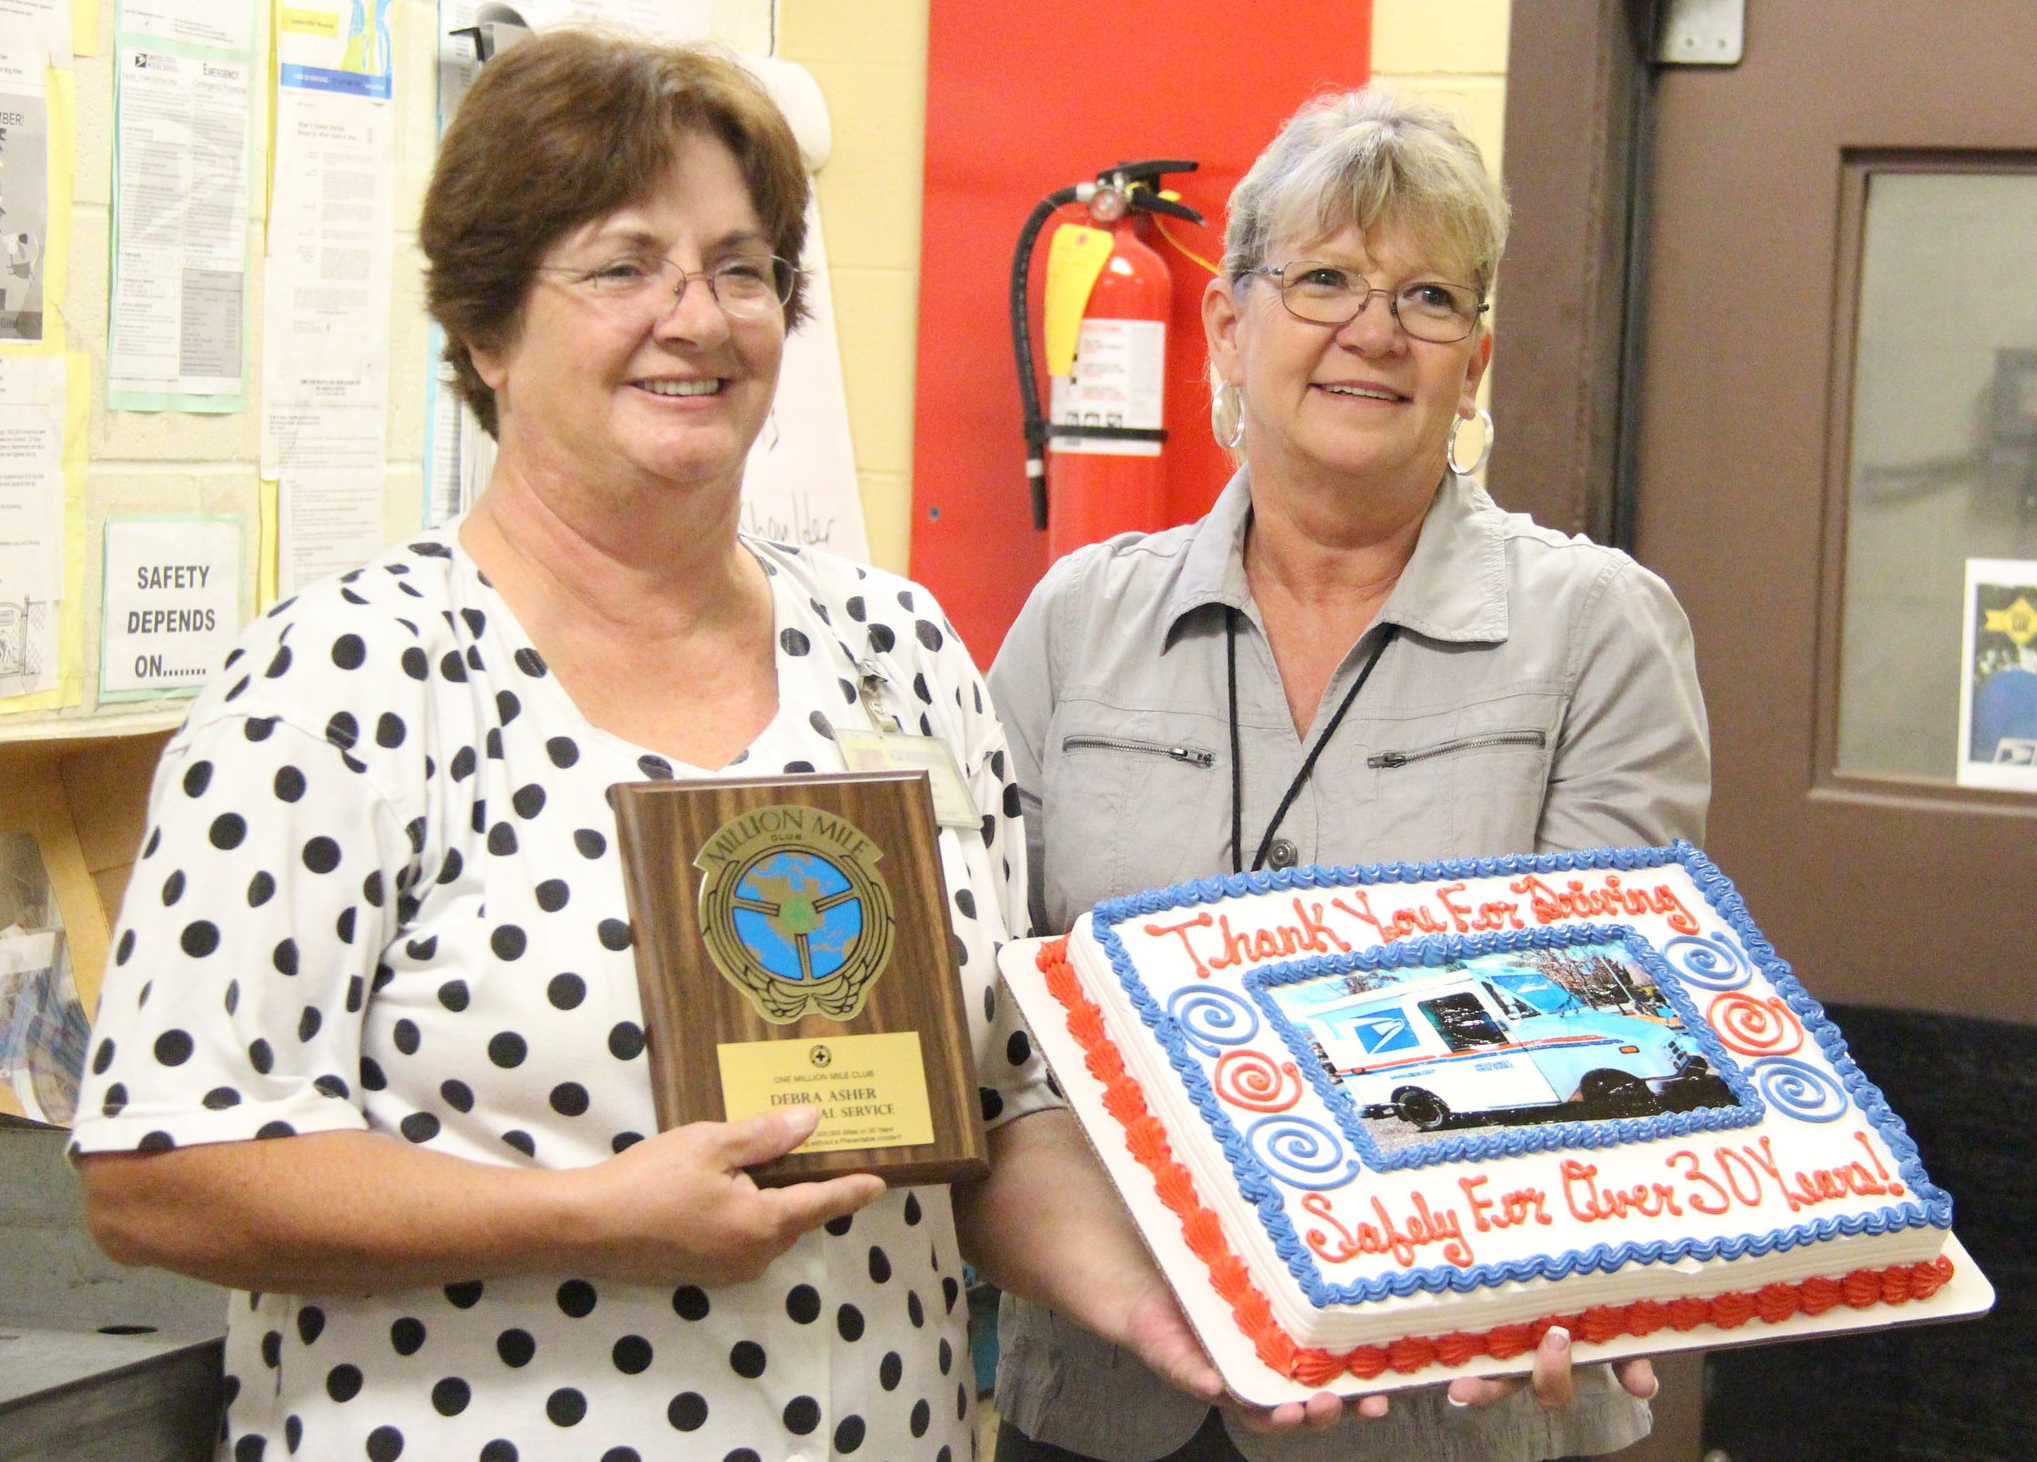 """ROSS MARTIN/Citizen photo Platte City Post Office postmaster Marla Eschbacher, right, presented long time mail carrier Debbie Asher with a National Safety Council """"Million Mile Award"""" for her service. Asher has spent 34 years as a carrier in Platte City, including 26 in a full-time capacity. The award goes to workers who have logged one million miles of driving or at least 30 years with driving as a daily duty with no accidents."""